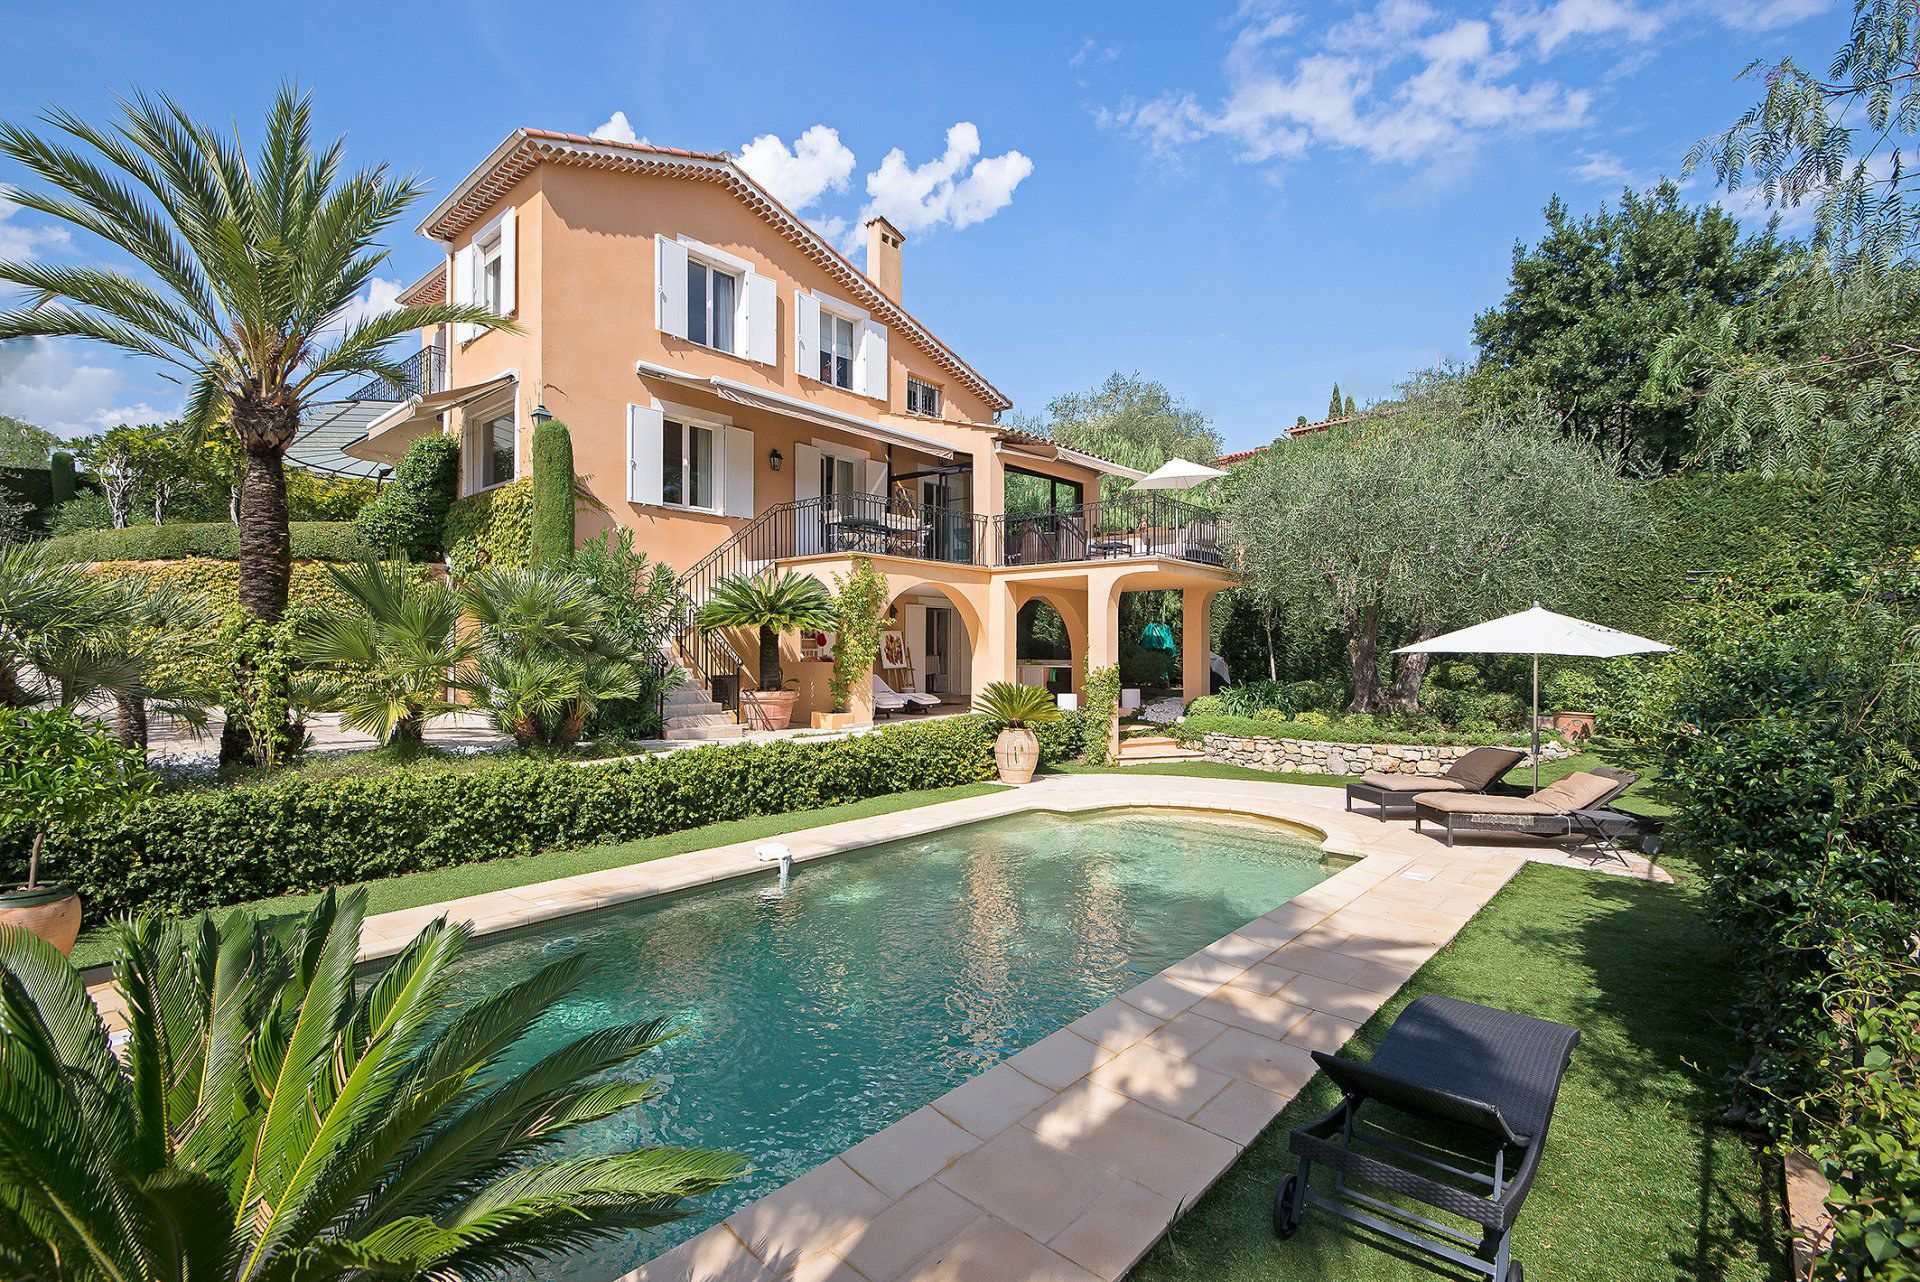 stunning french villas for sale gardens villas and lush